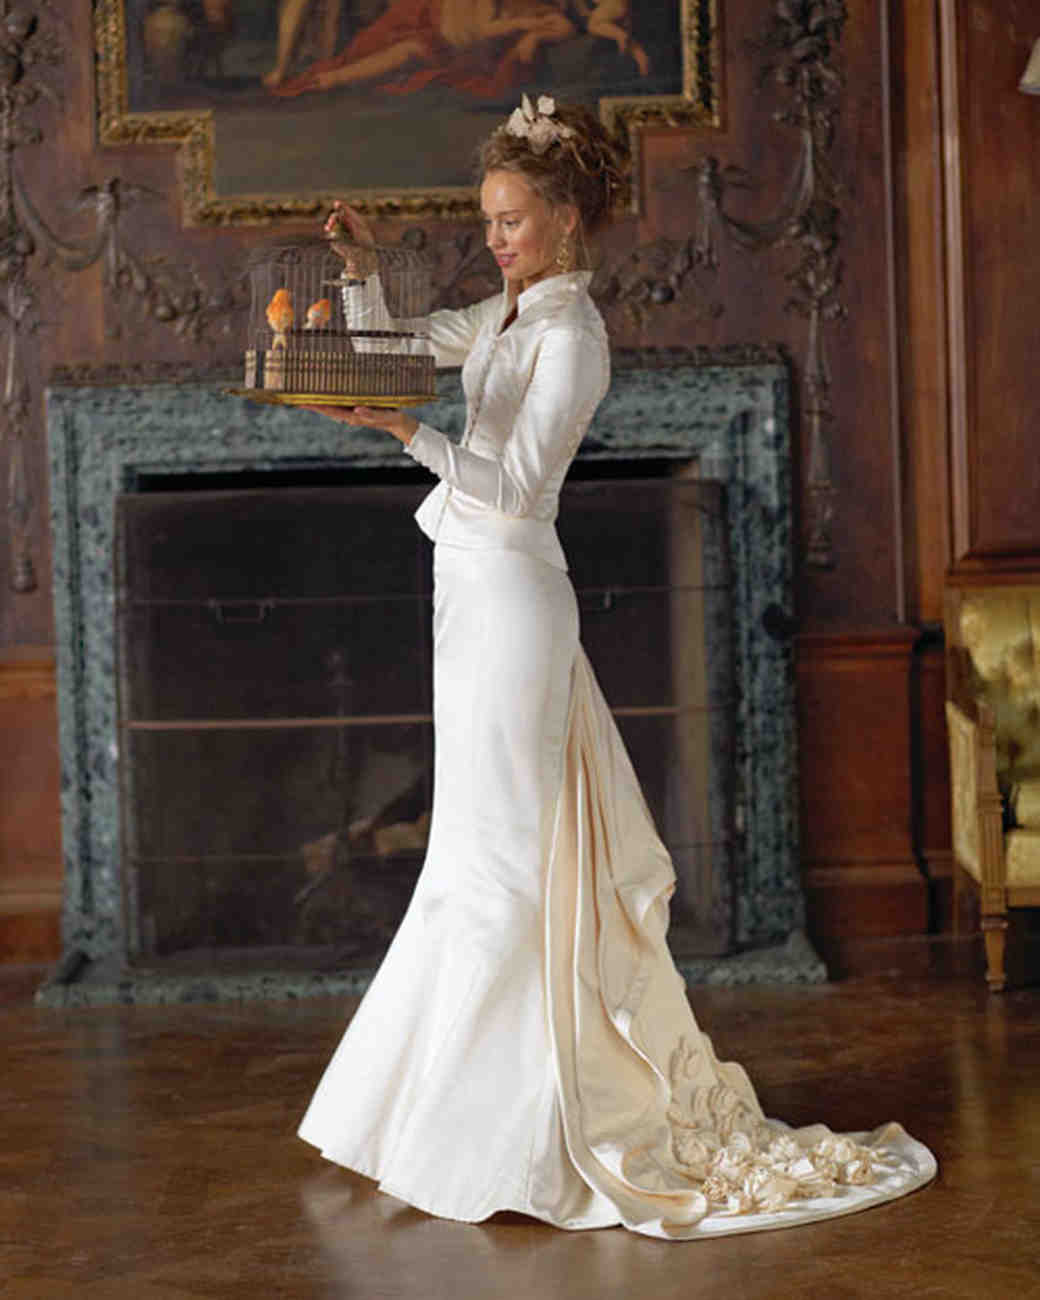 Classic Wedding Dress Cuts by Decade | Martha Stewart Weddings